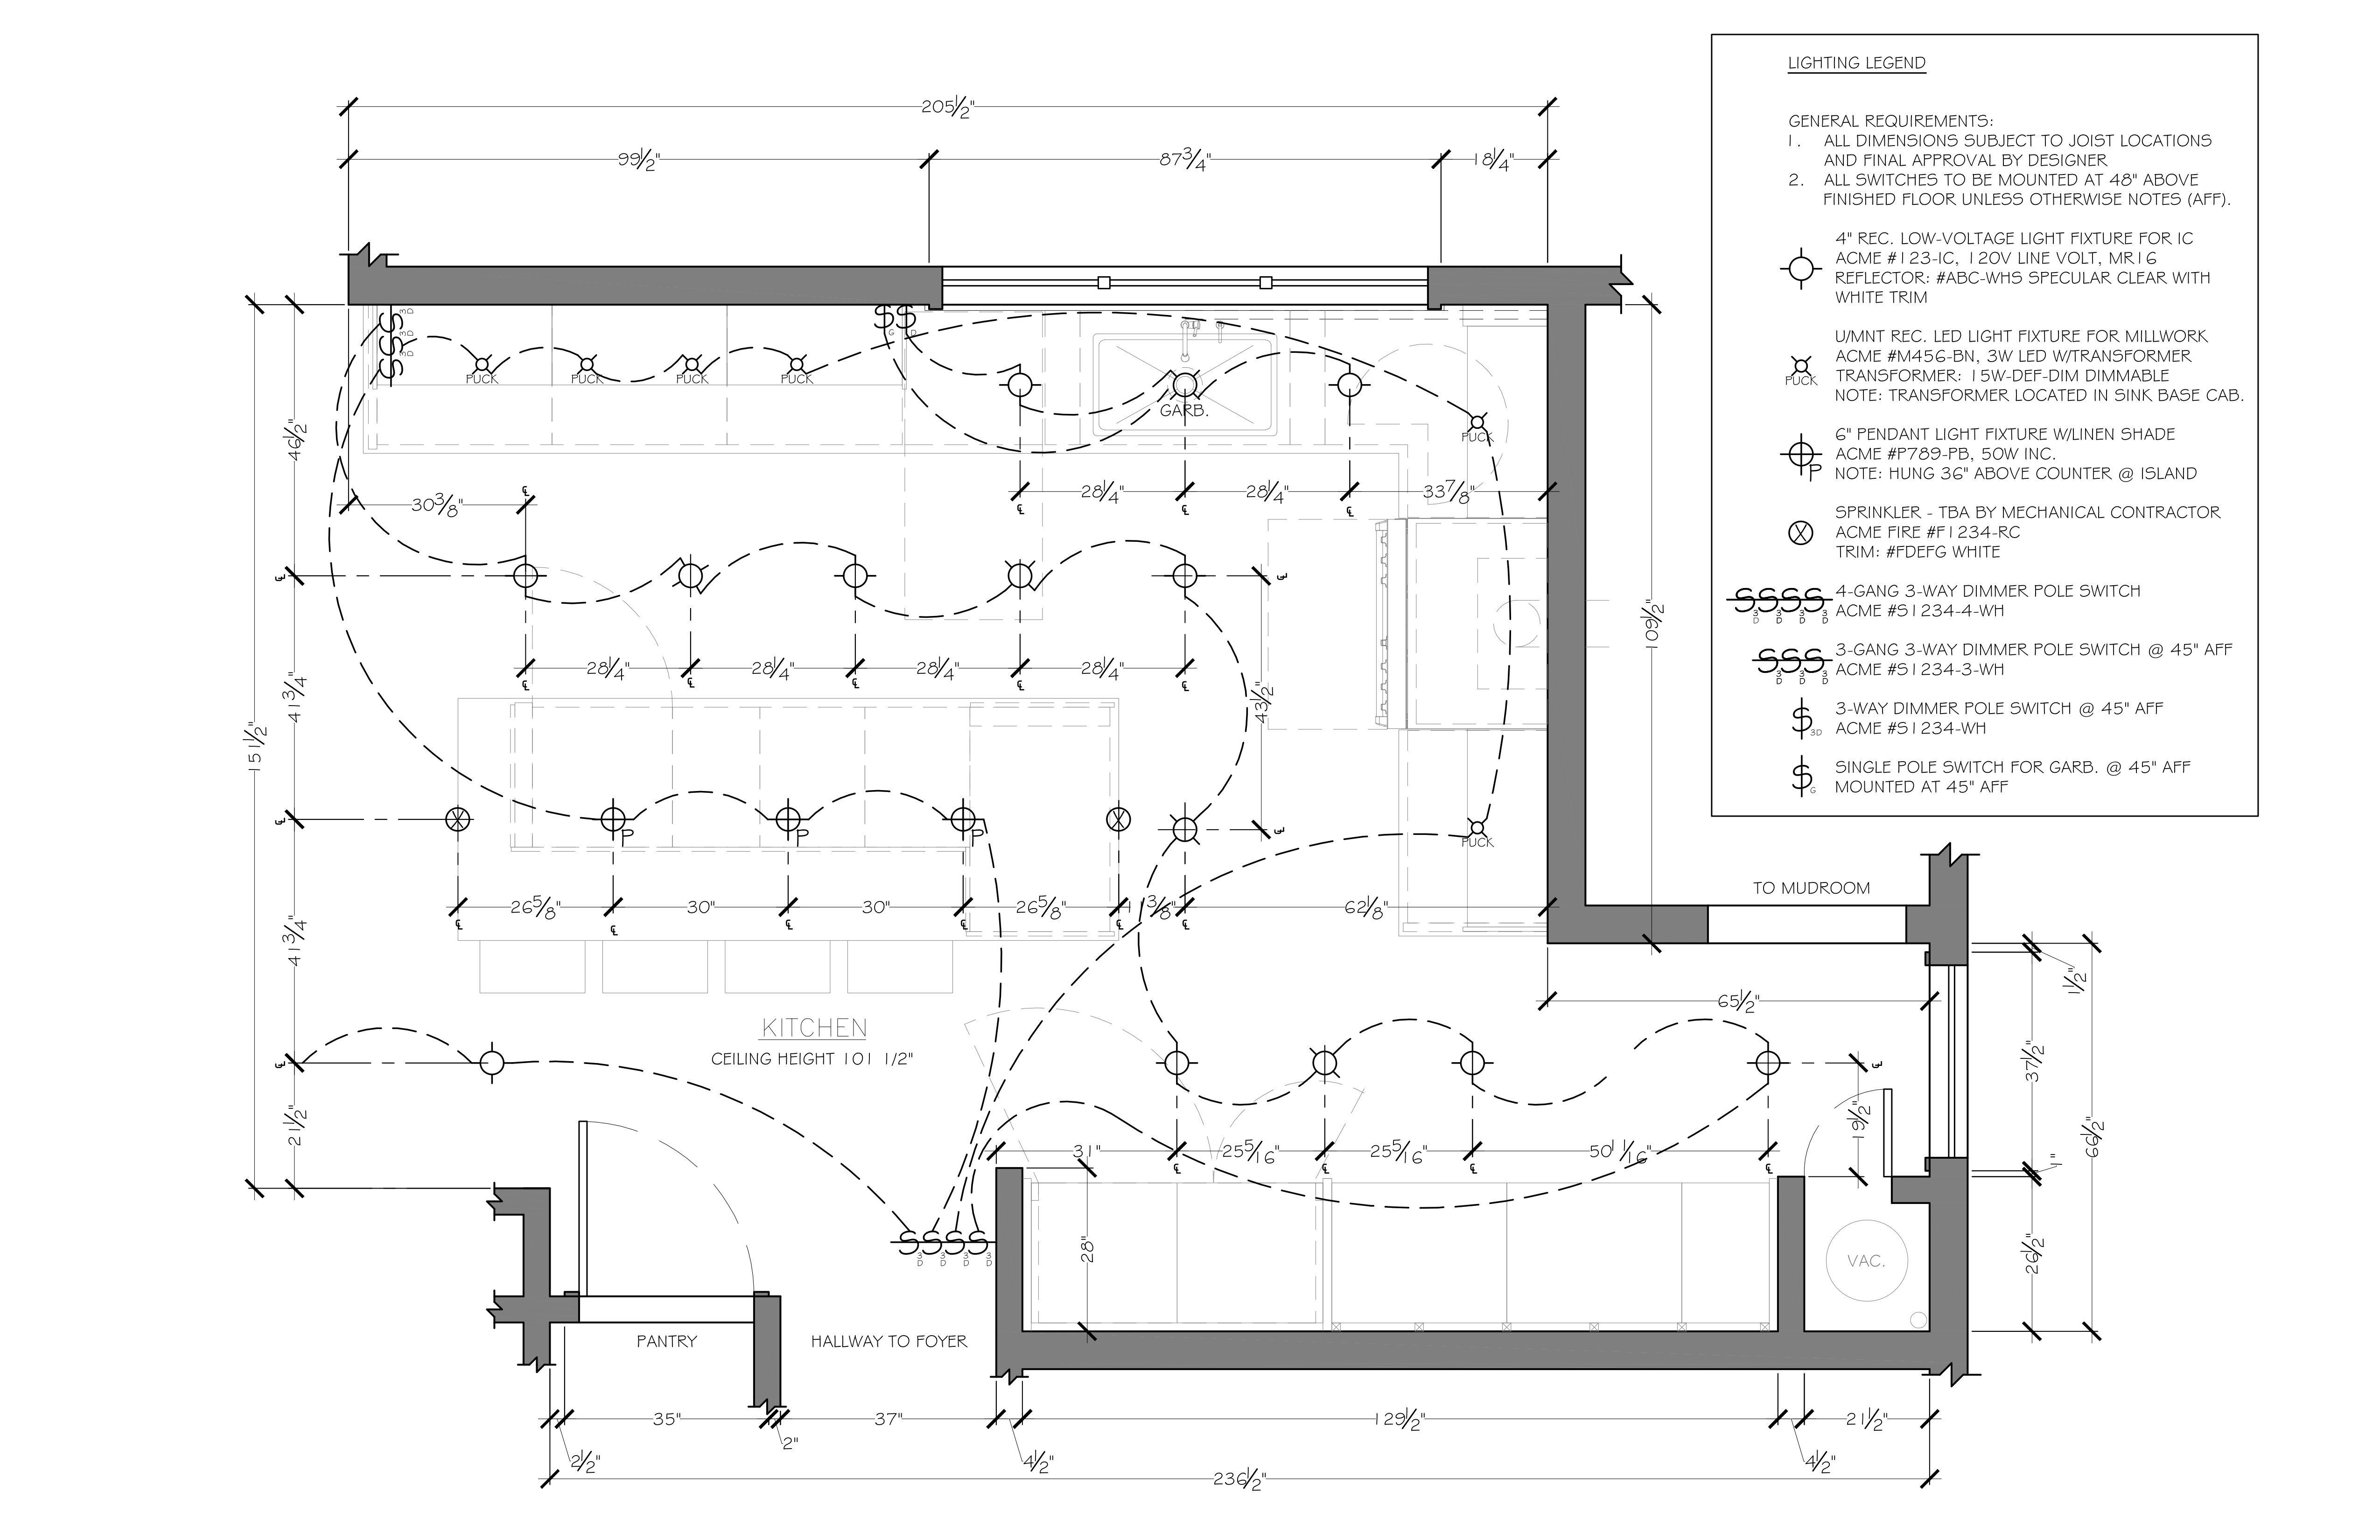 small resolution of kitchen reflected ceiling plan example c 2013 corey klassen ckd used under permission from the national kitchen bath association